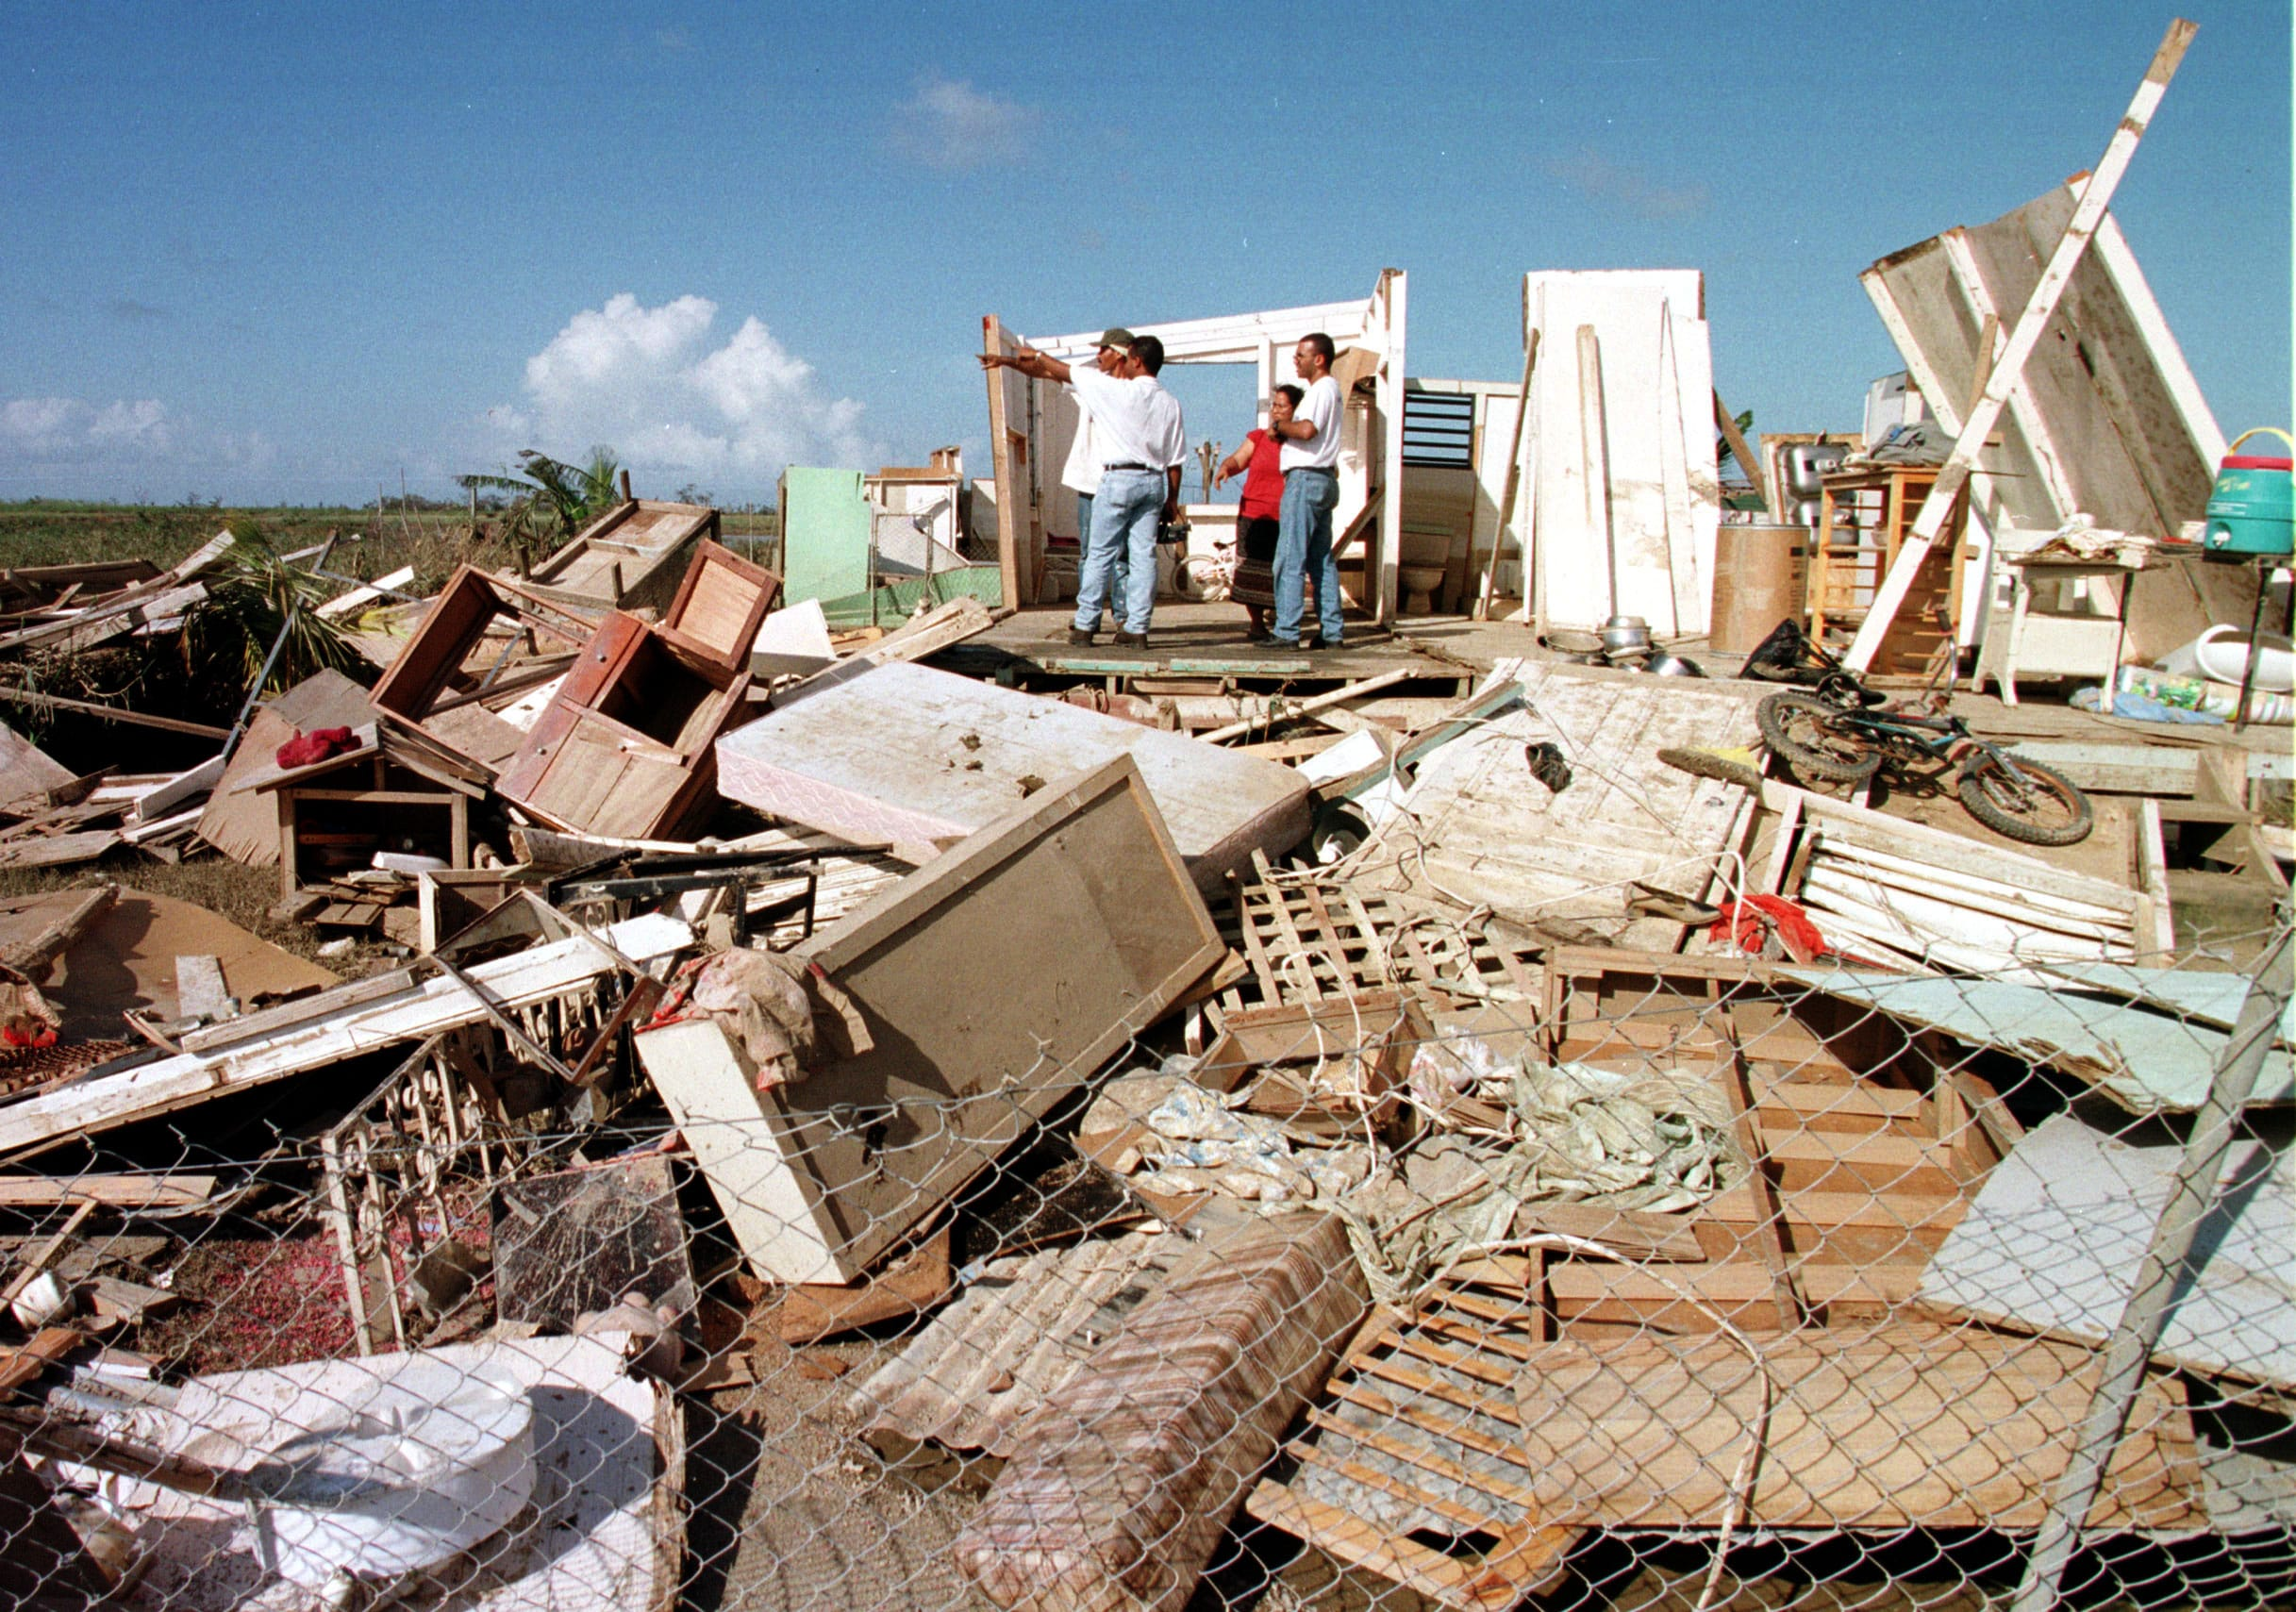 The dreadful aftermath of a destructive hurricane.